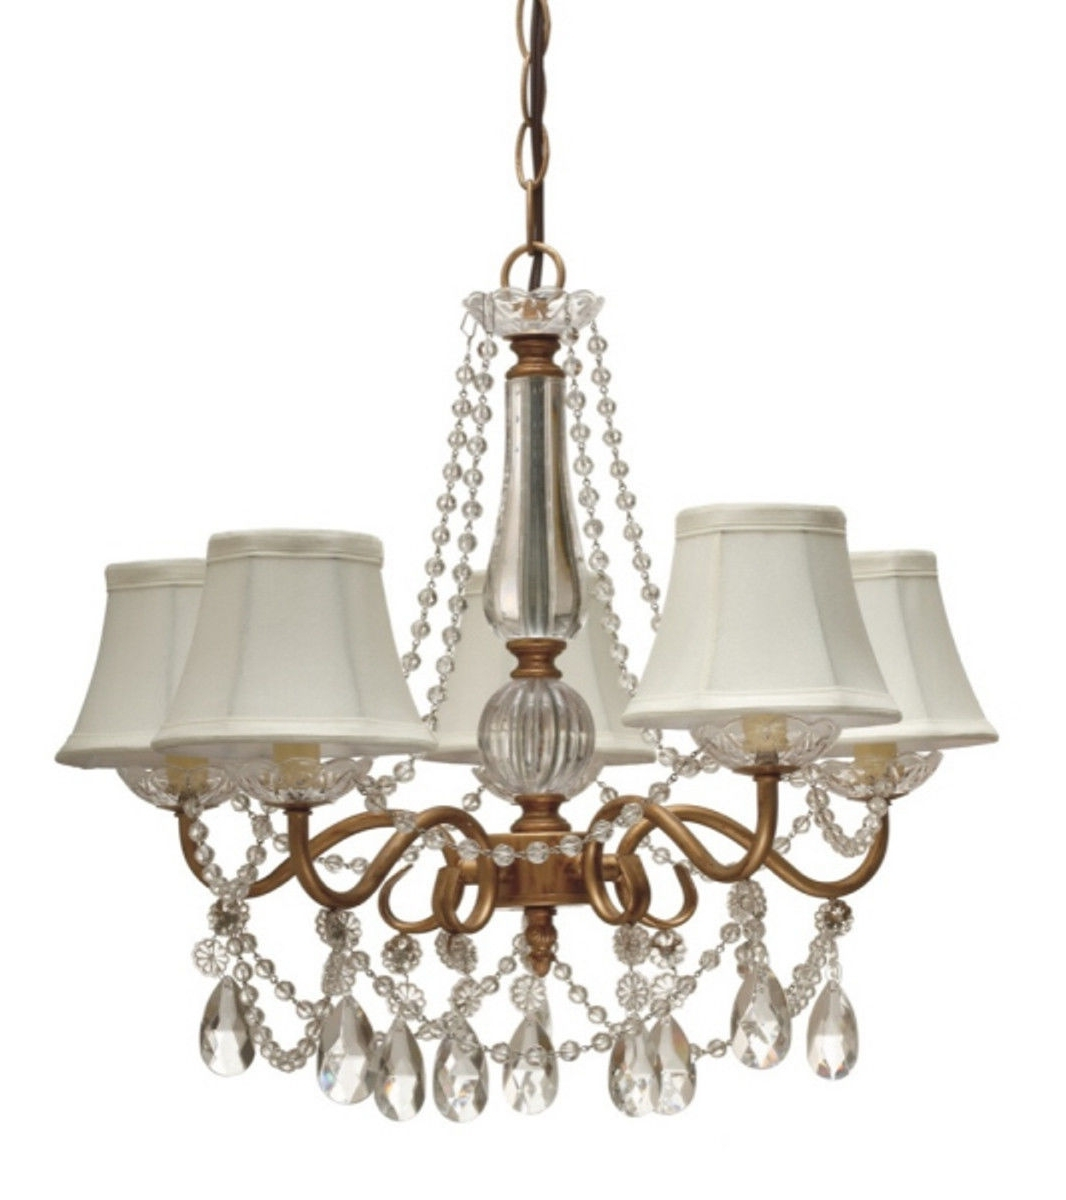 Chandelier Lampshades Regarding Well Known Enjoyable Inspiration Lamp Shades With Crystals Modern Ceiling Club (View 11 of 15)